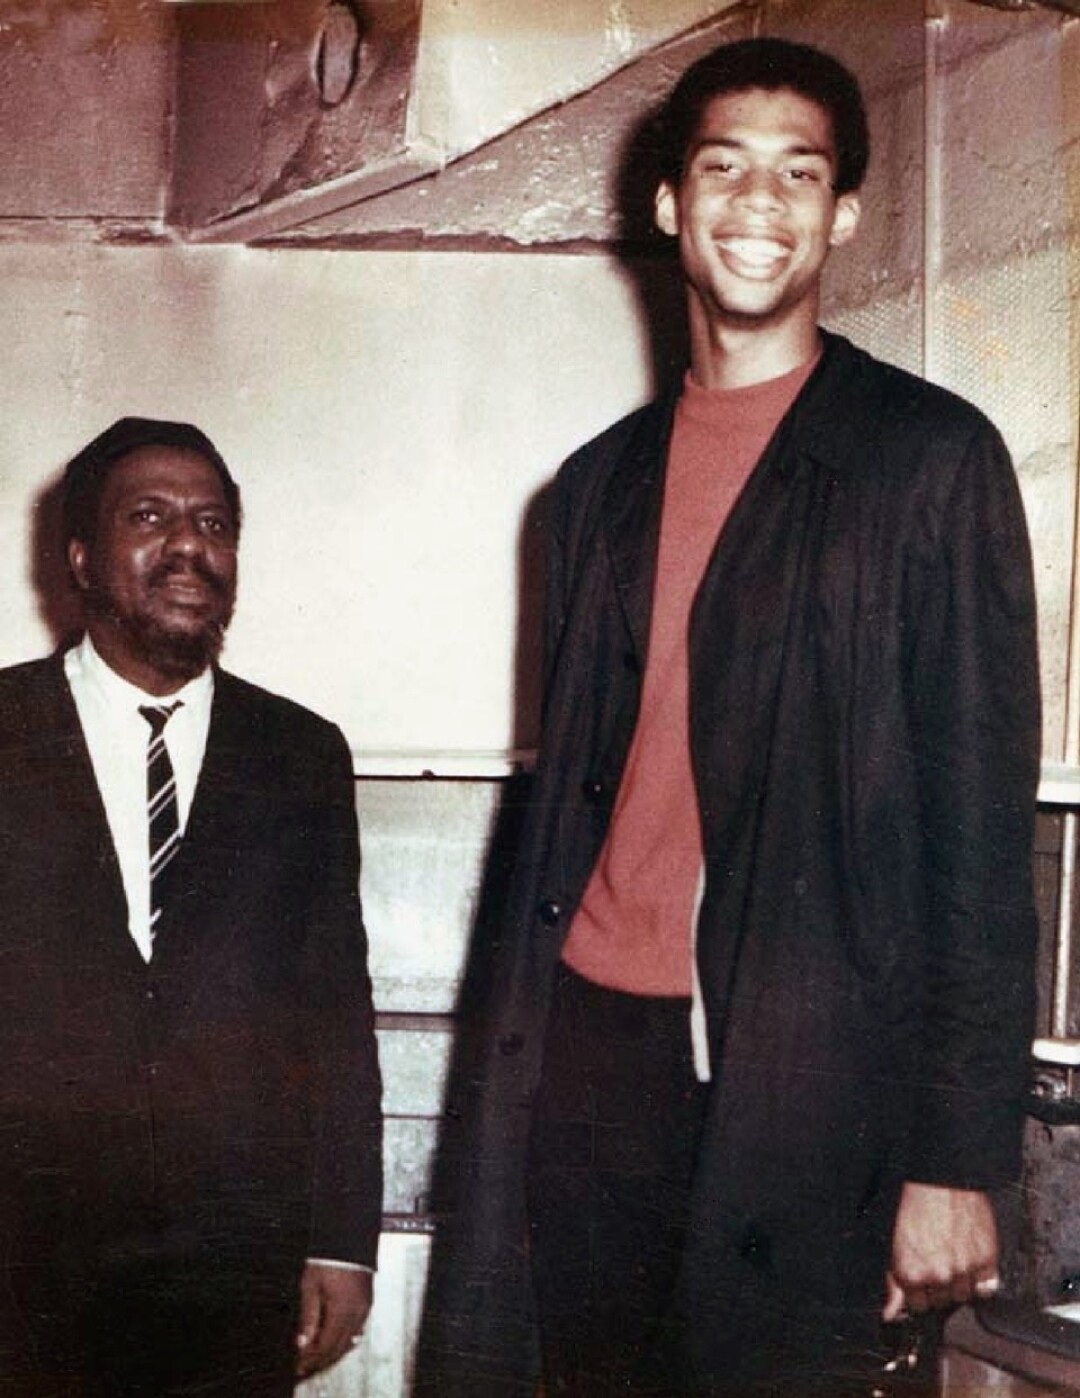 Kareem Abdul-Jabbar, then 19, with jazz legend Thelonious Monk.